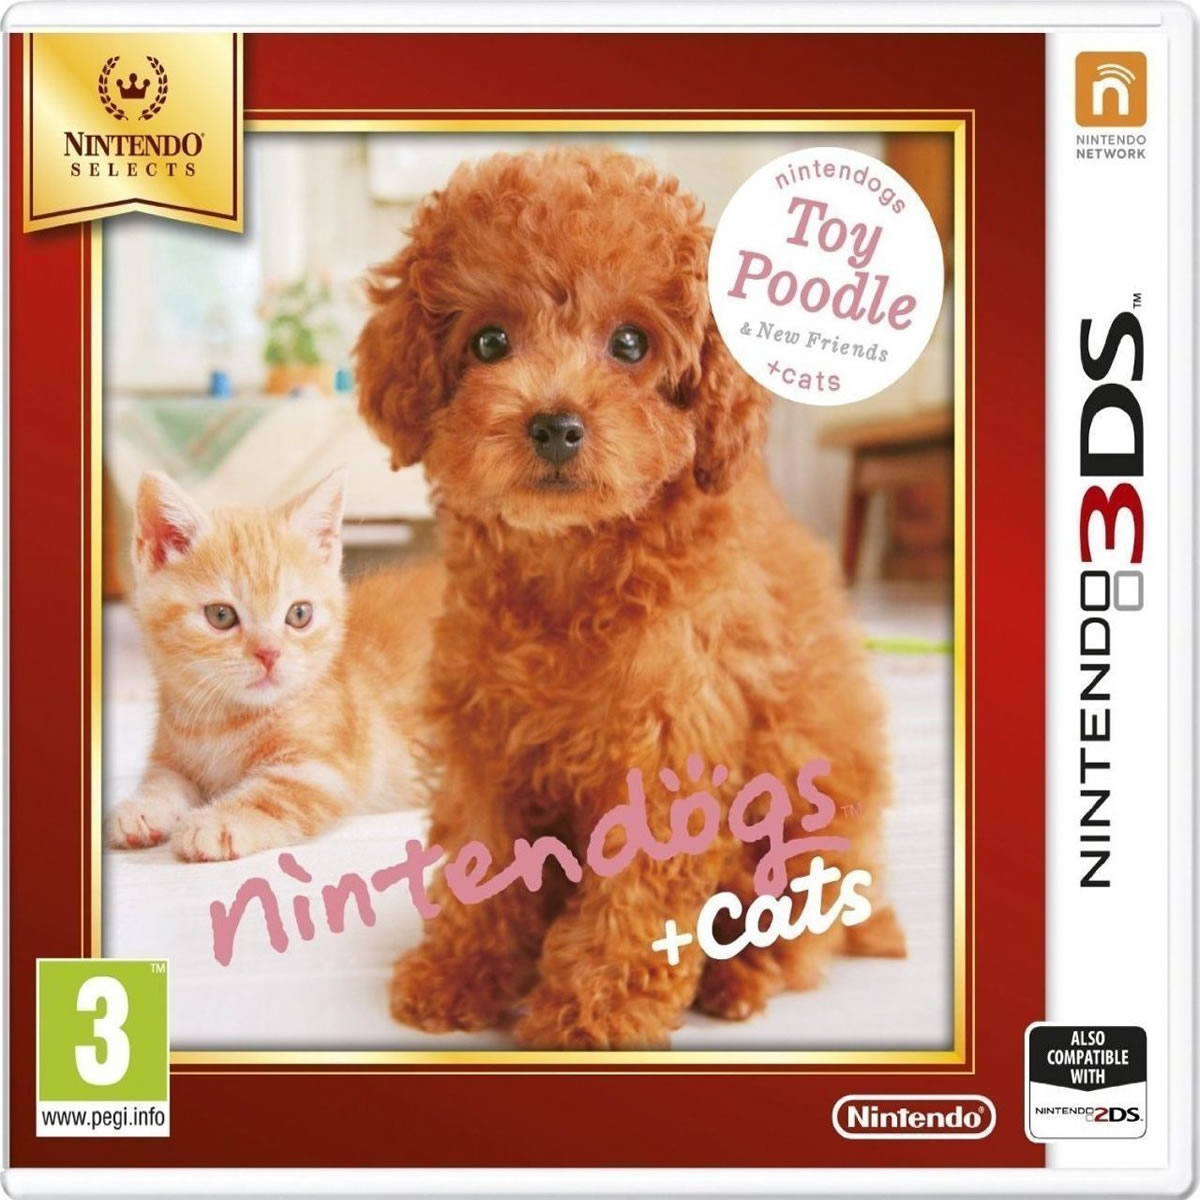 NINTENDOGS :PODDLE & FRIENDS - SELECTS (3DS, 2DS)